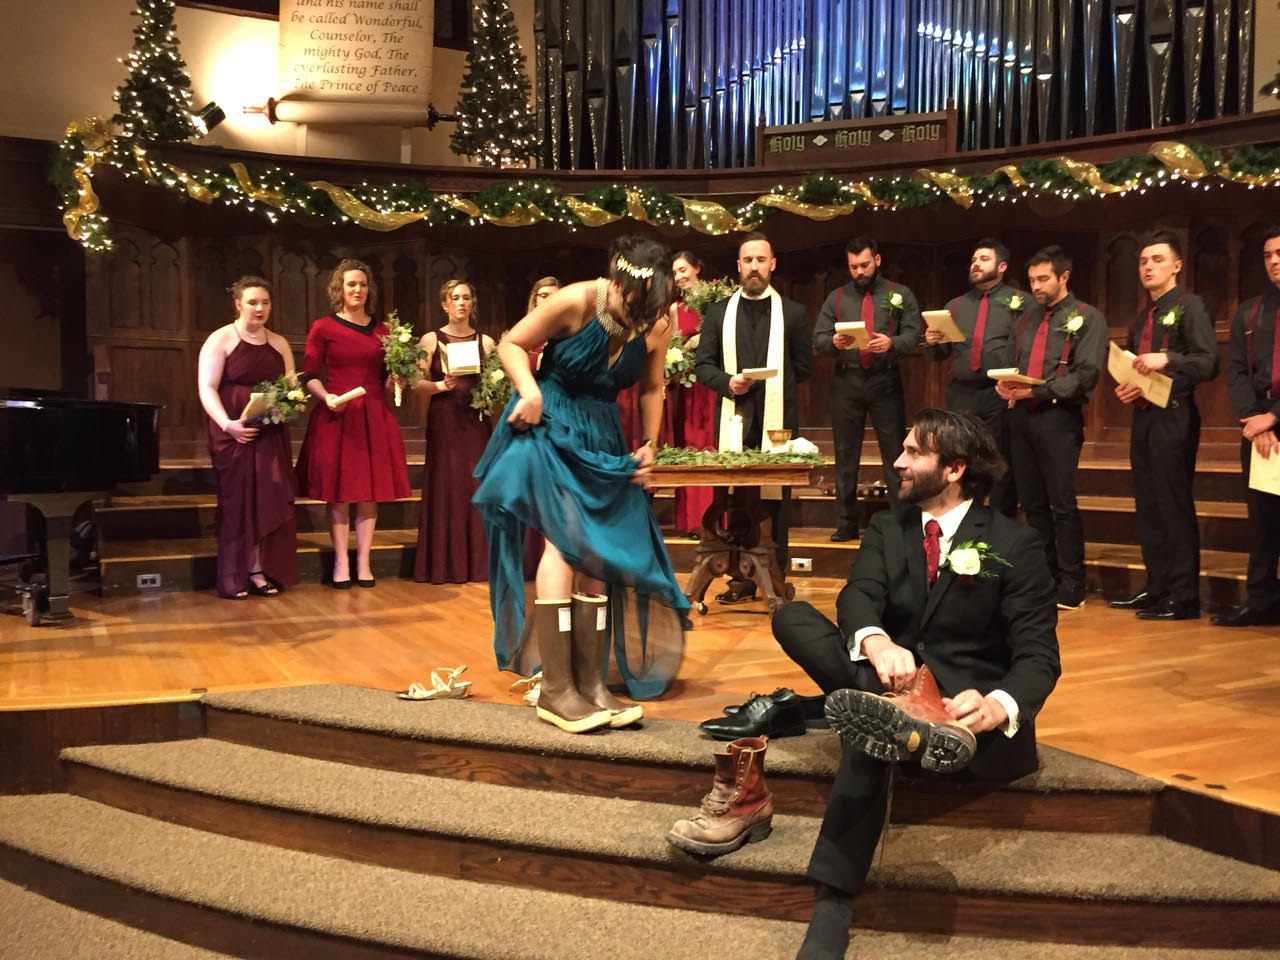 wedding--putting on boots.jpg